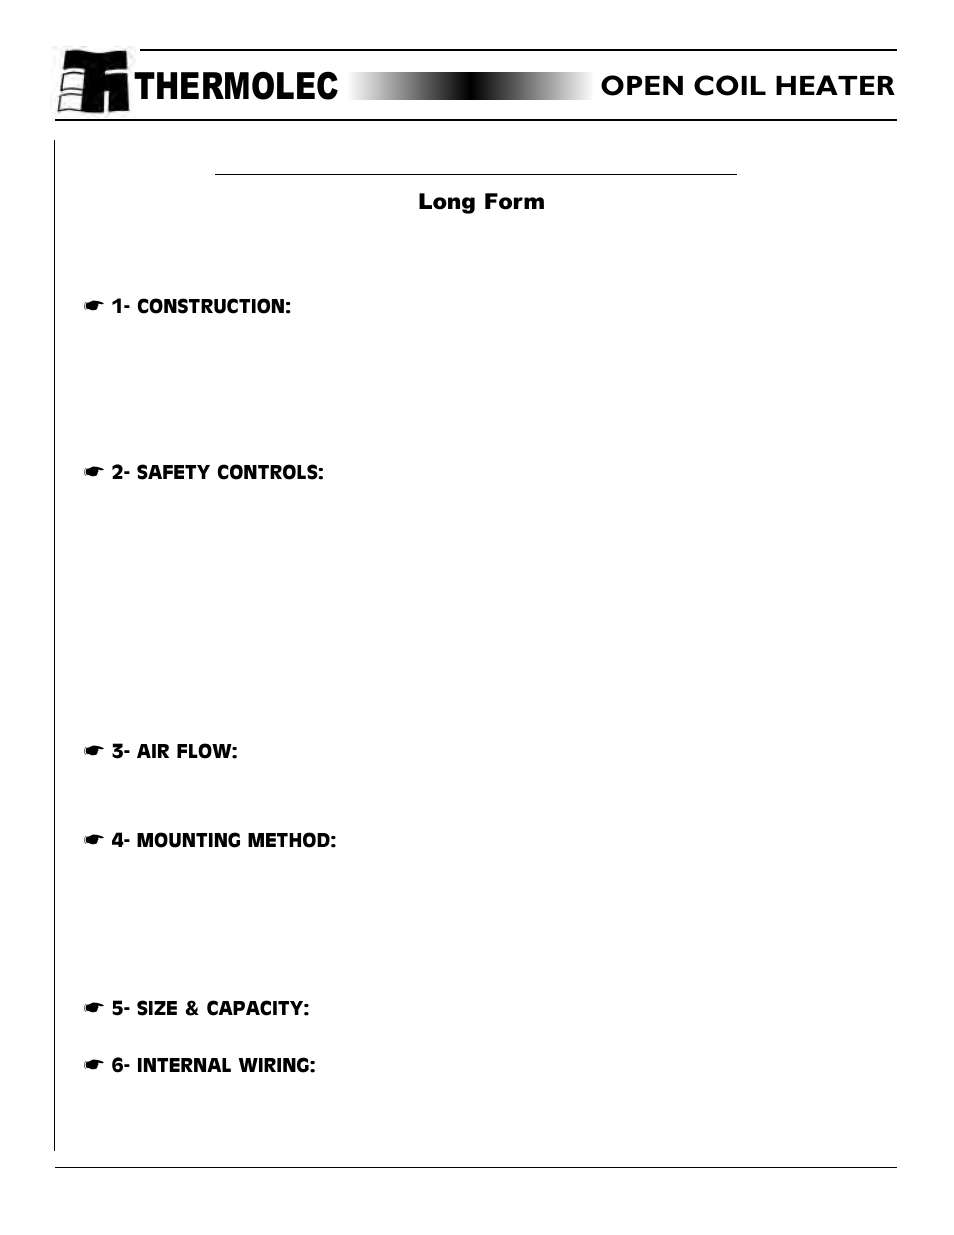 thermolec application technical notes page39 open coil heater specification, specification for open coil thermolec duct heater wiring diagram at mifinder.co